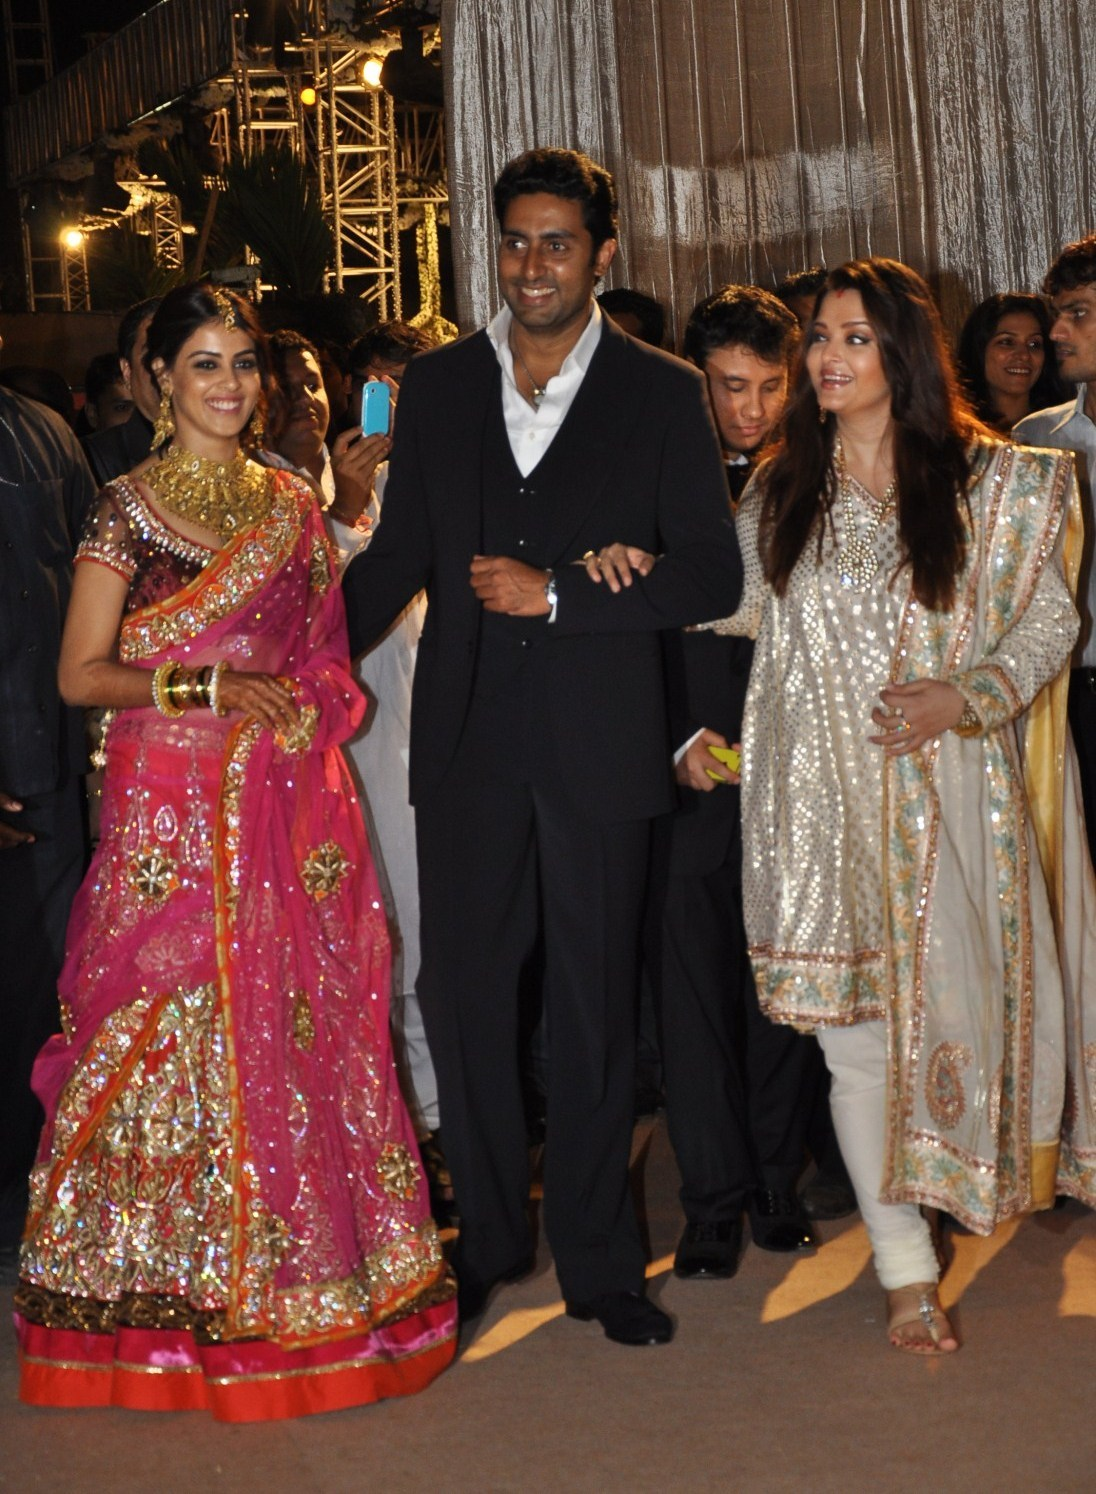 posing Aishwarya Rai Bachchan and Abhishek Bachchan at the wedding ...